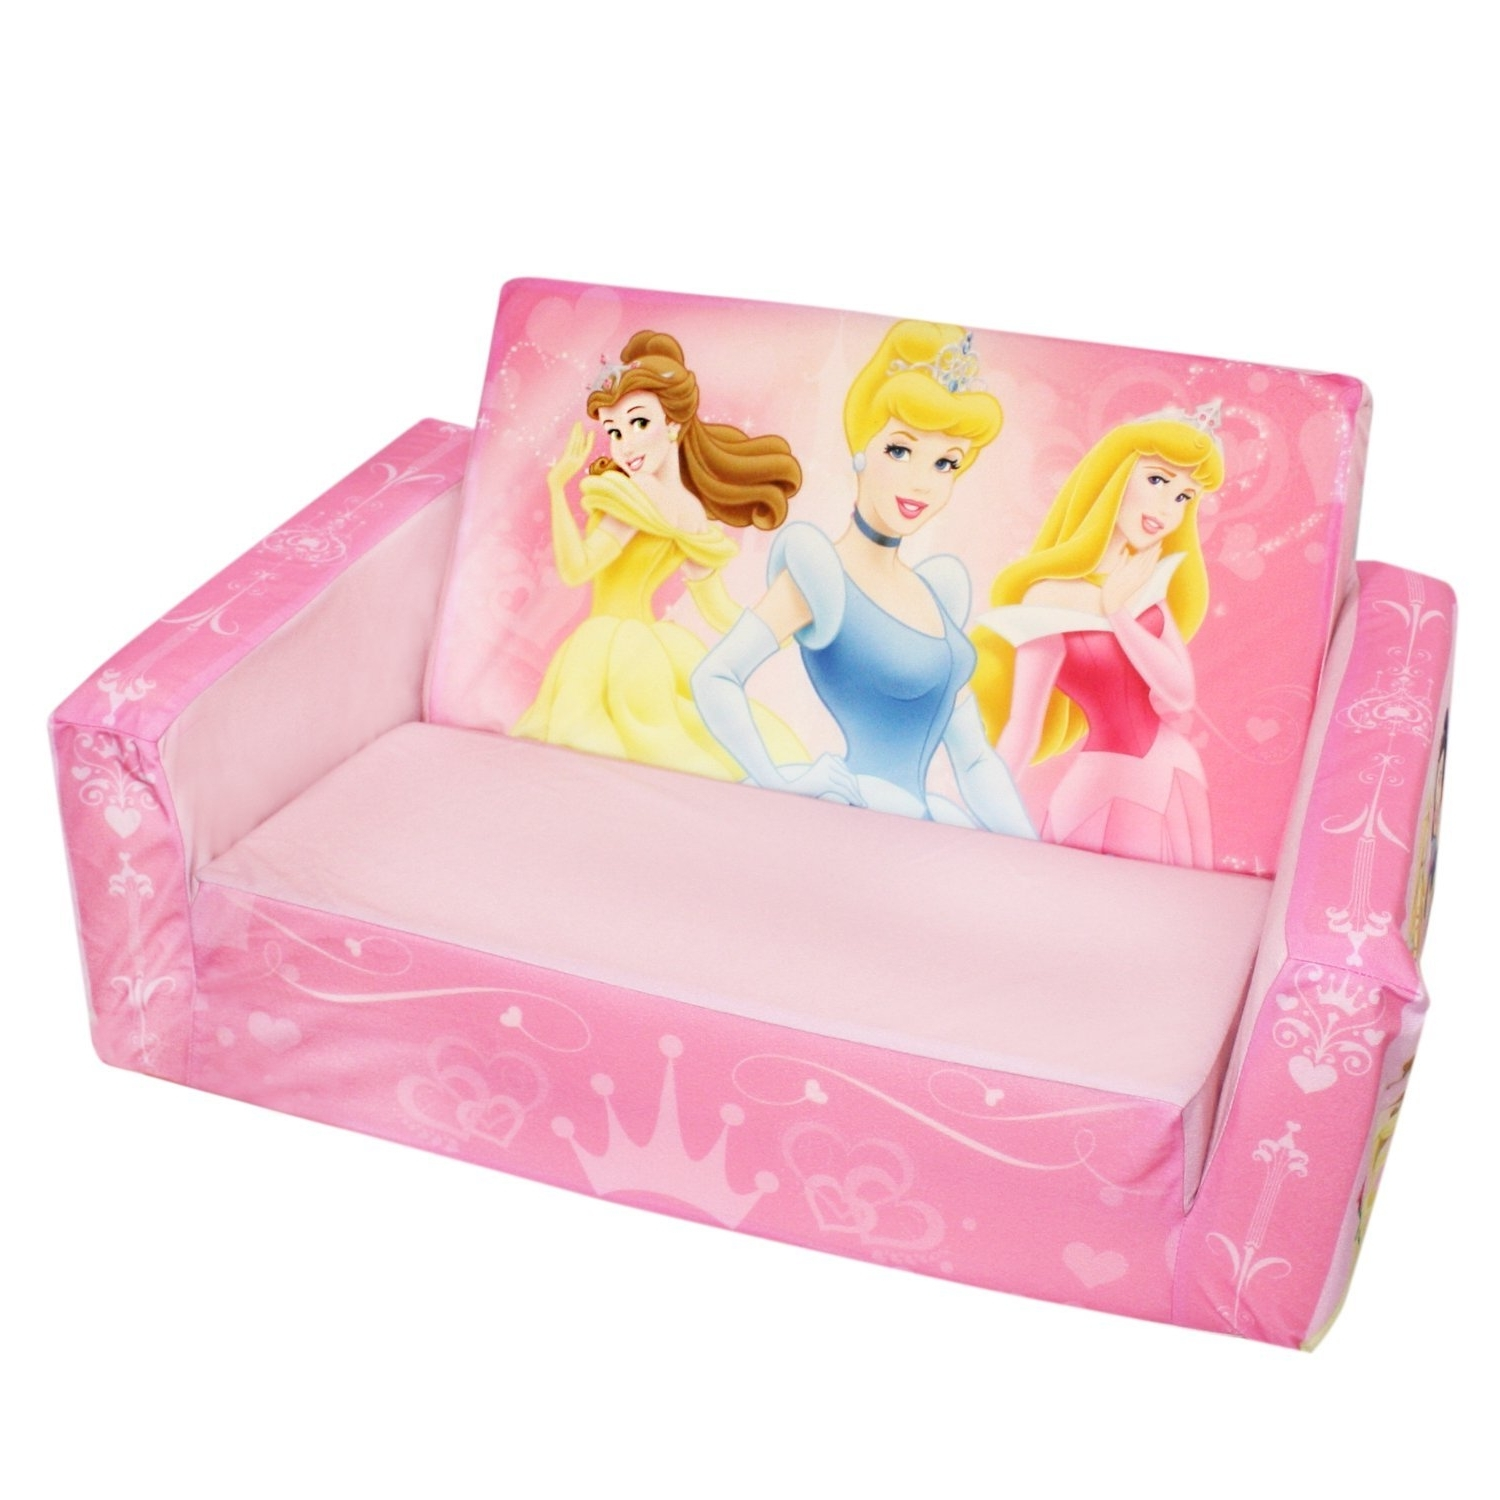 Most Recent Disney Sofa Chairs Throughout Disney Princess Fold Out Couch — Randy Gregory Design : Fold Out (View 7 of 20)